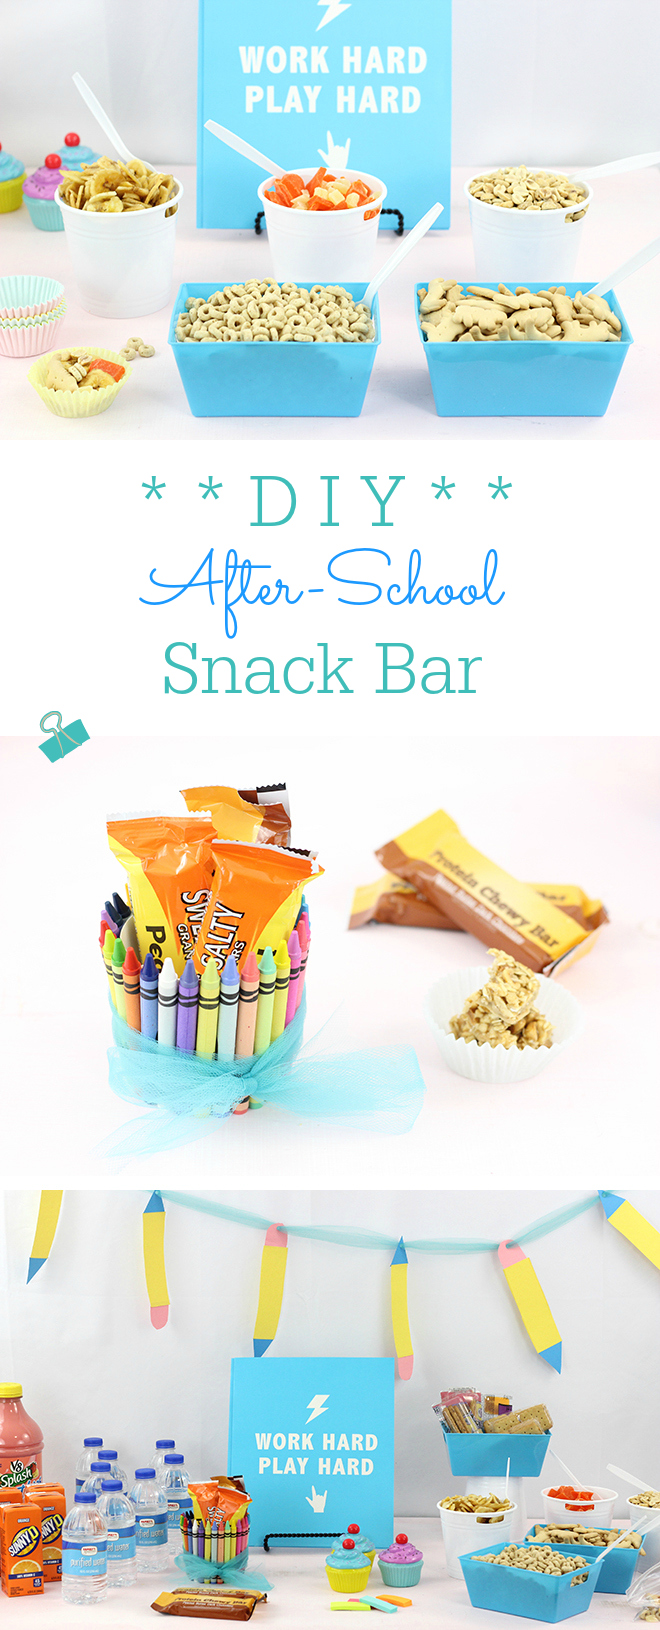 DIY After School Snack Bar. Snack Station for kids. Cute DIY Ideas and simple snack ideas. The trail mix bar is such a COOL idea!